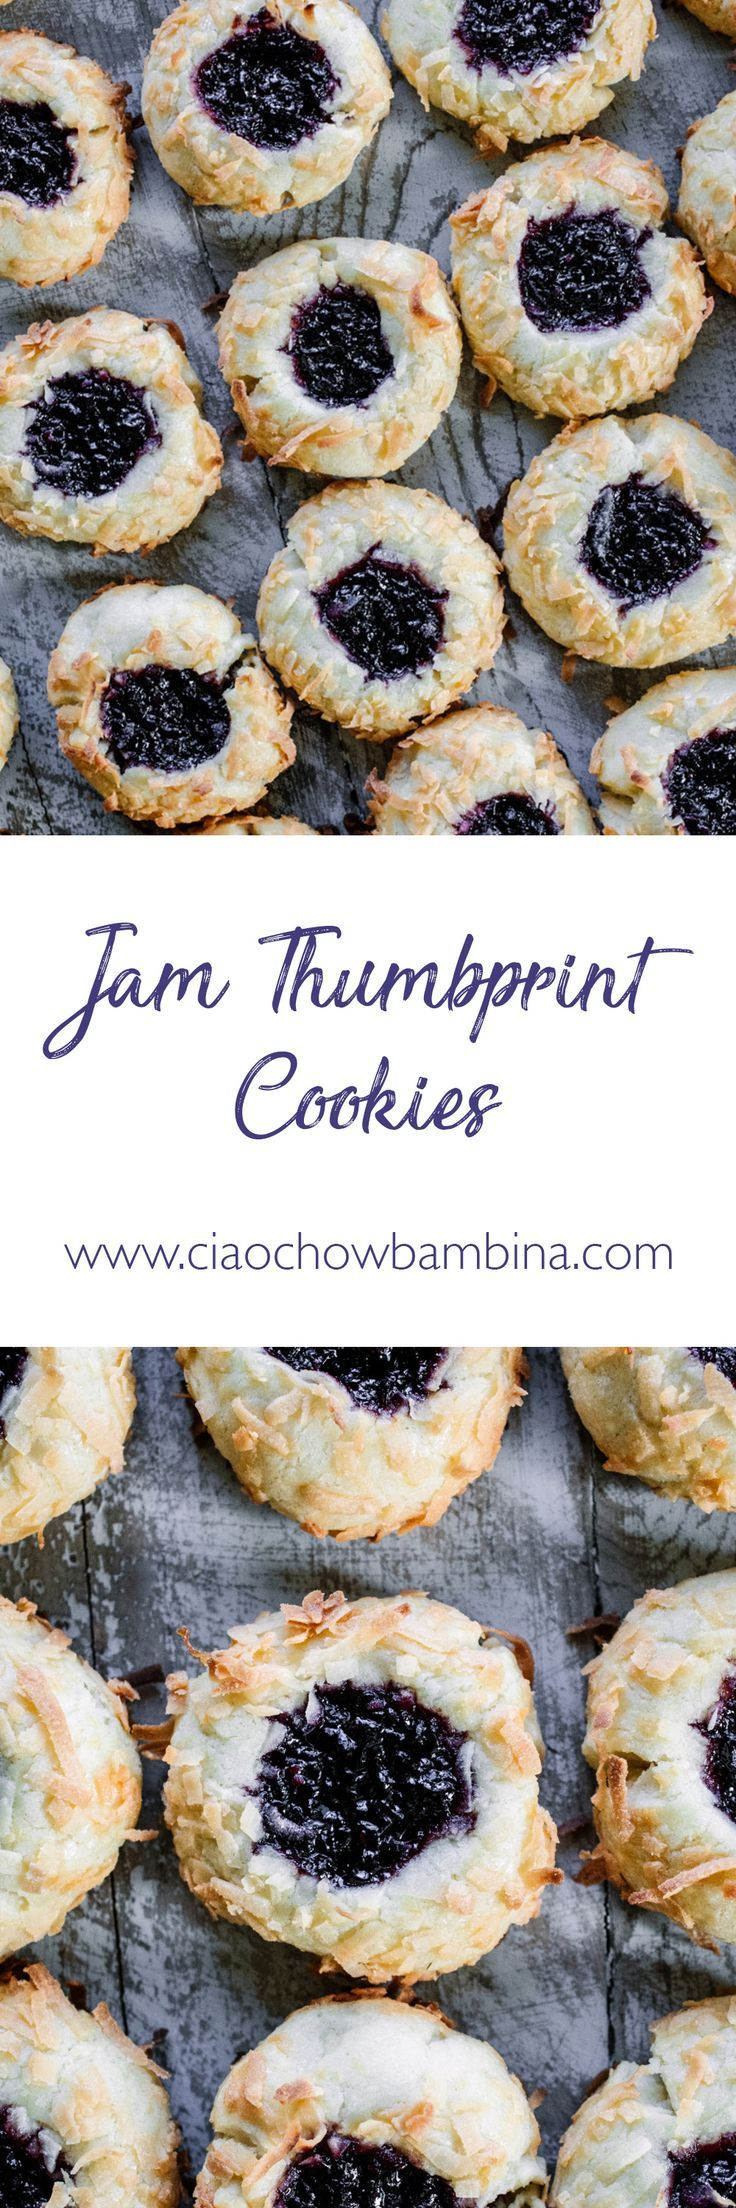 Jam Thumbprint Cookies Who doesn't love a good butter cookie? Am I right? A rich shortbread? These Jam Thumbprint Cookies deliver the decadence of a shortbread with the sweet complement of a tasty jam. |